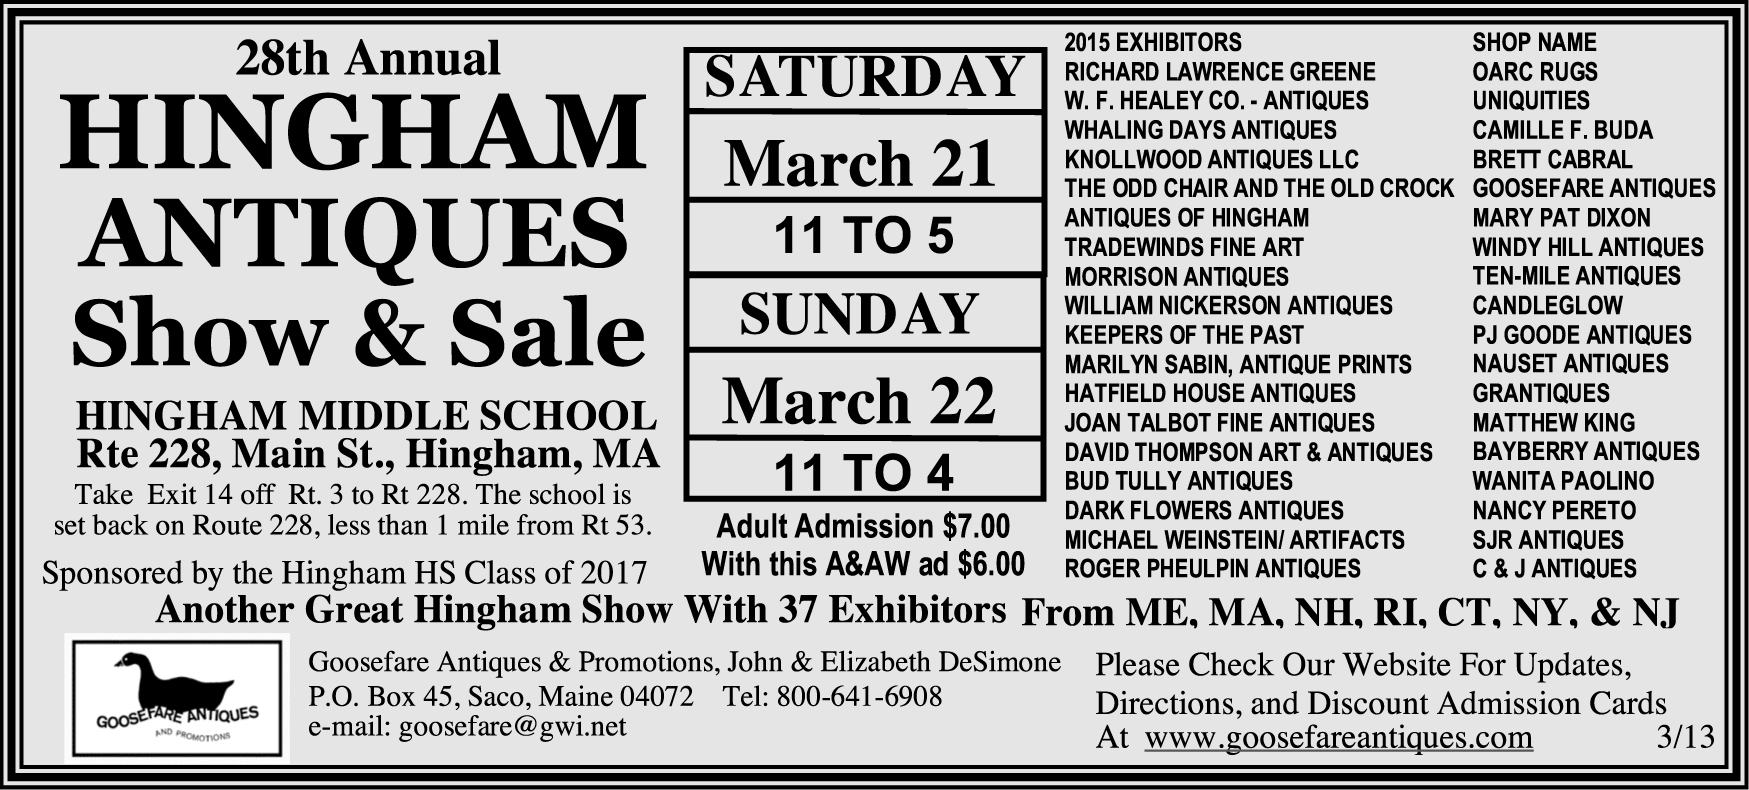 28th Hingham Antiques Show and Sale